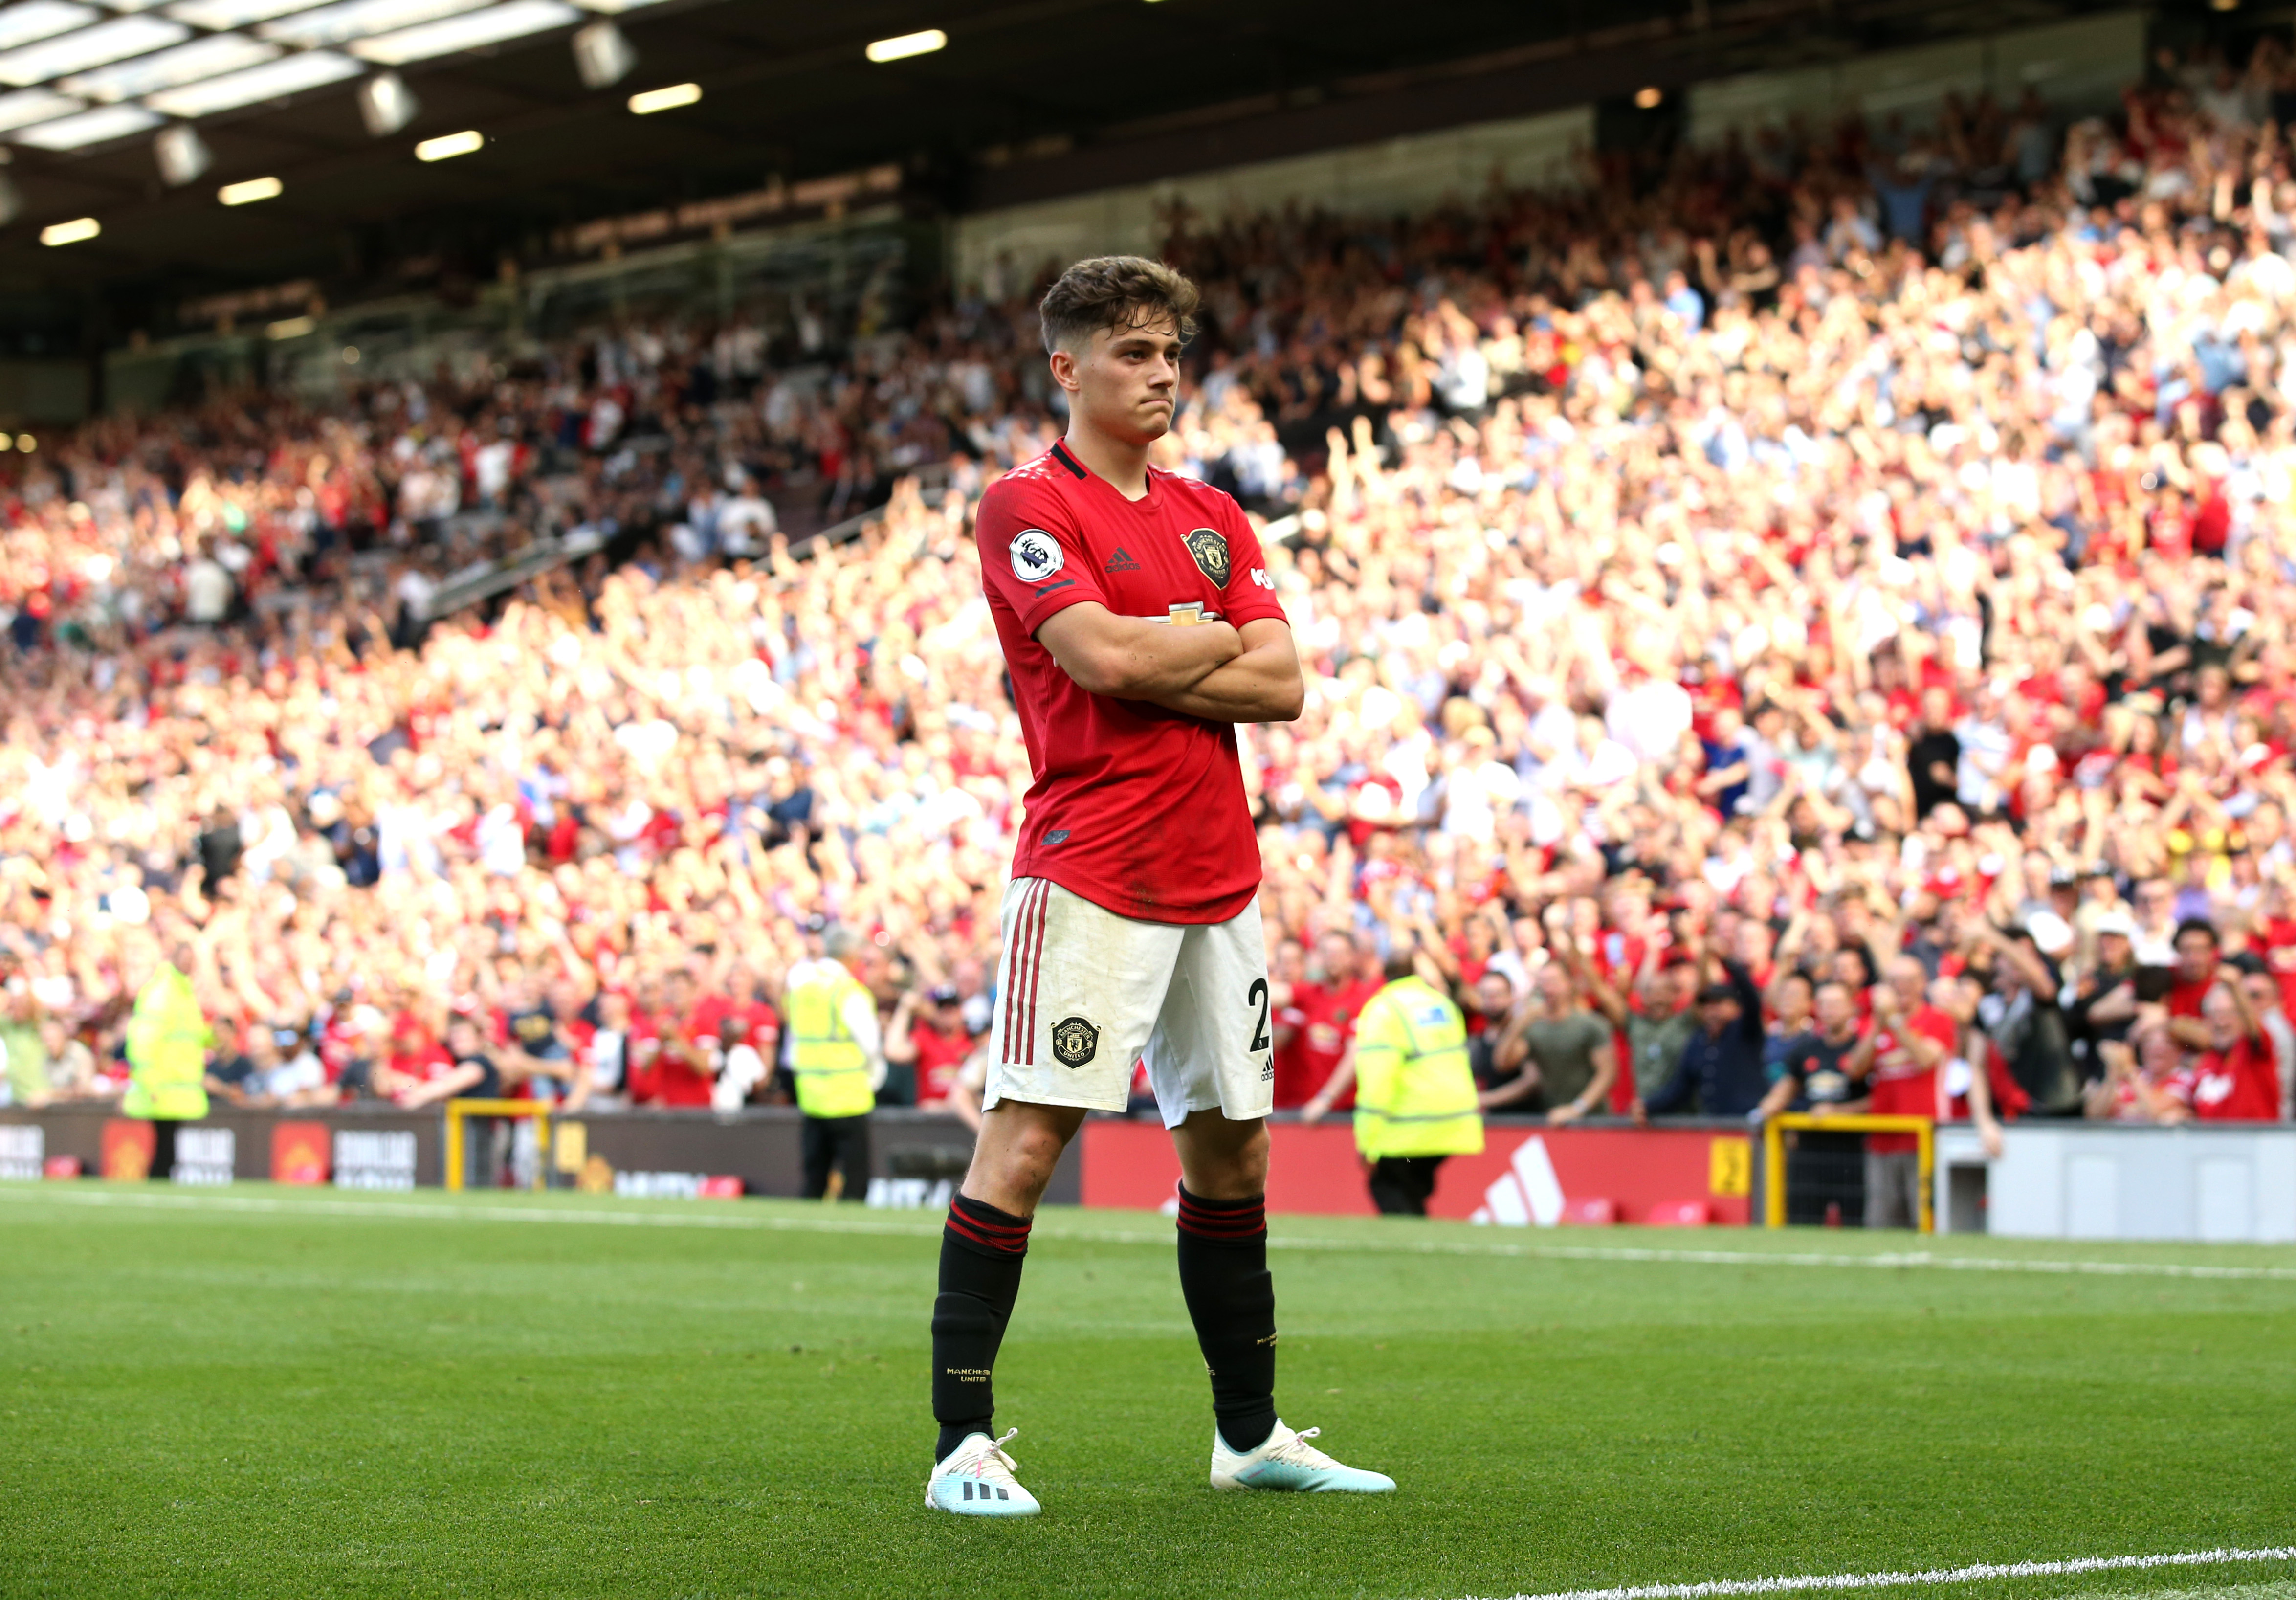 James made a blistering start to life at Manchester United. (Photo by Jan Kruger/Getty Images)